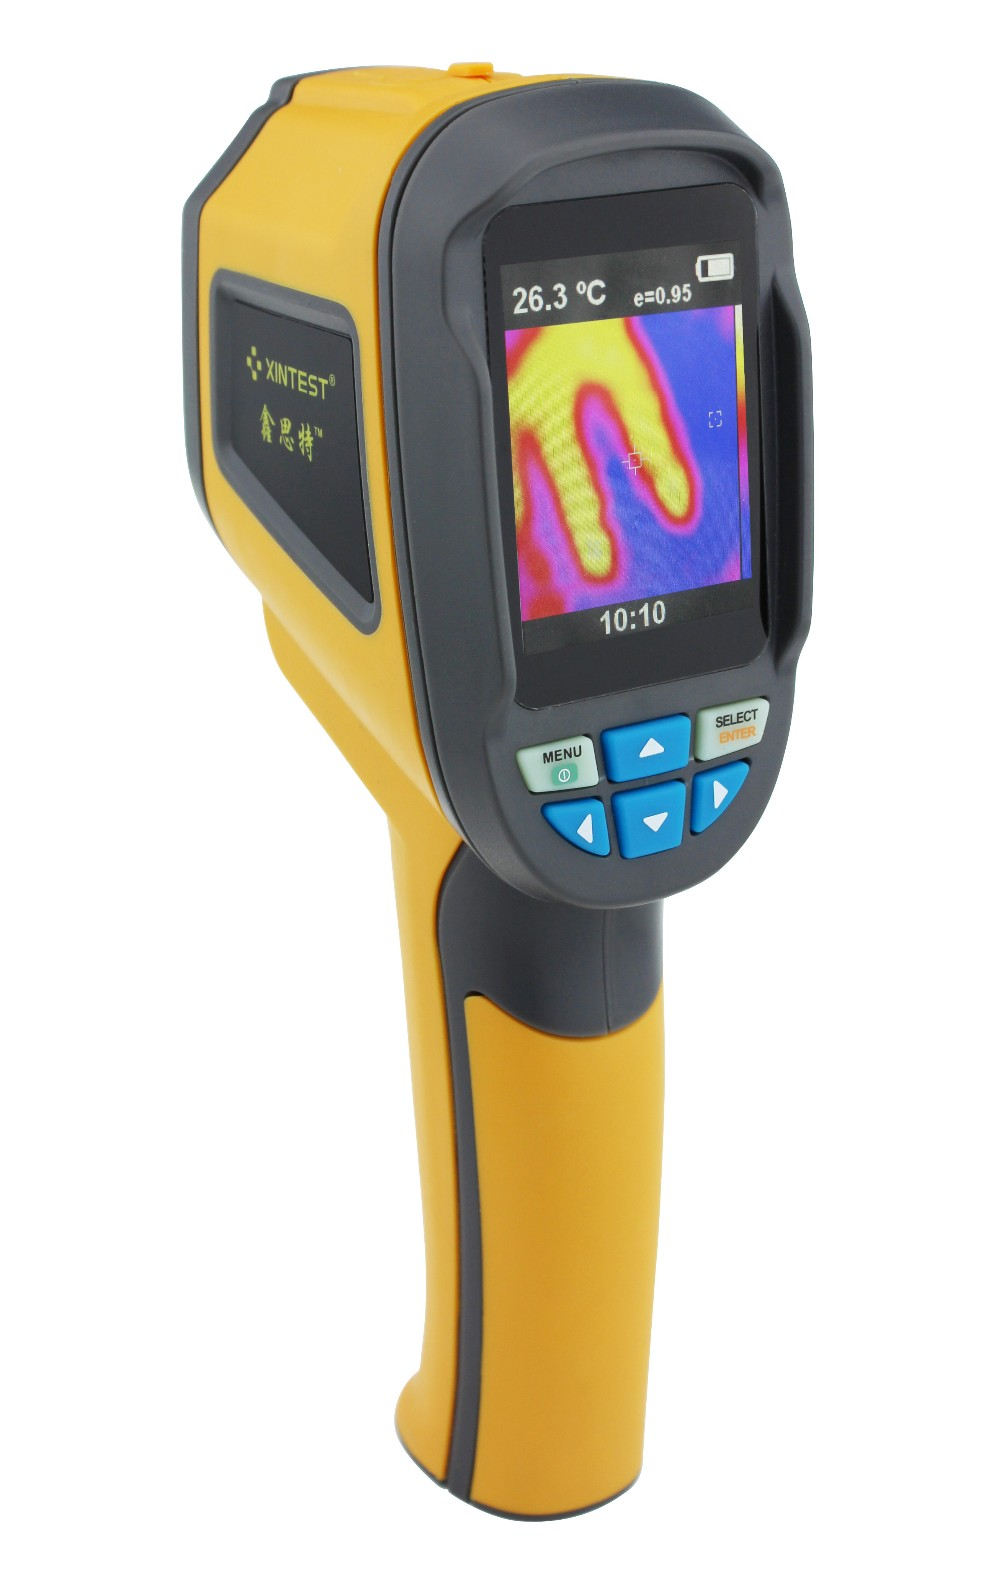 Industrial multi-function Thermal Imagers HT-02 Handheld Digital Infrared Imaging Camera